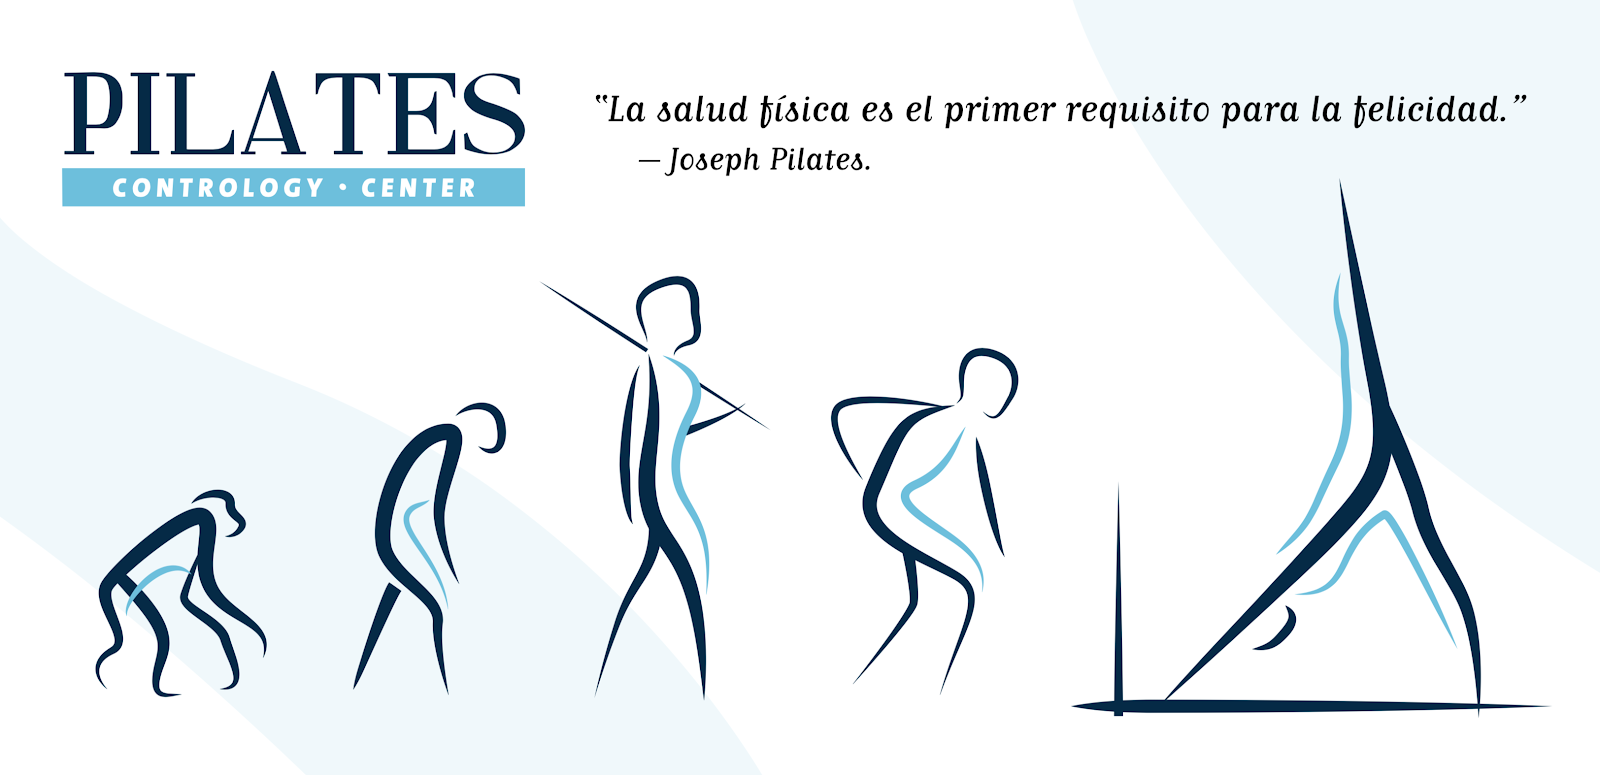 Pilates Contrology Center